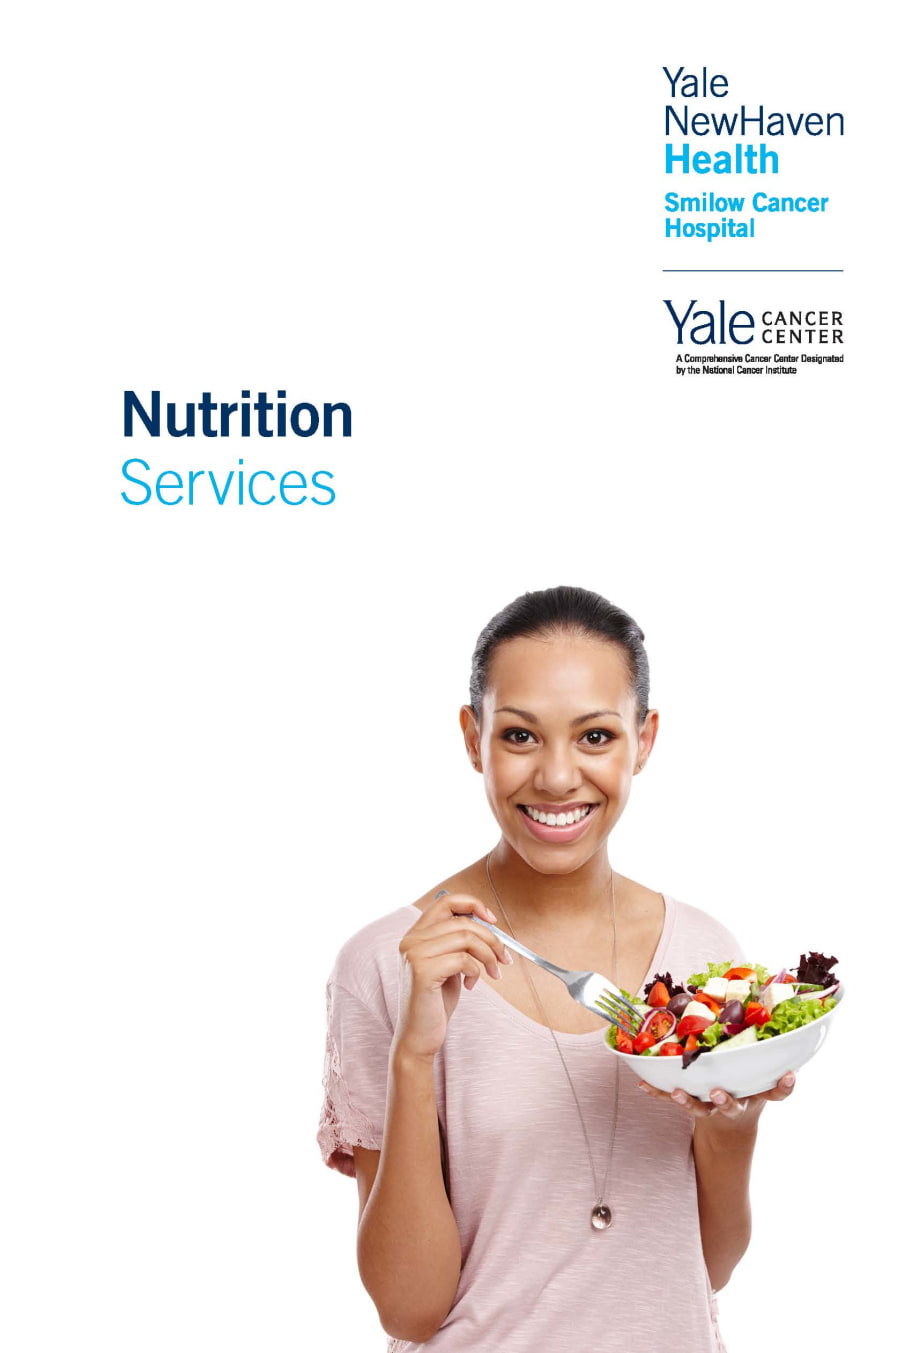 cover of nutrition brochure- woman eating a salad